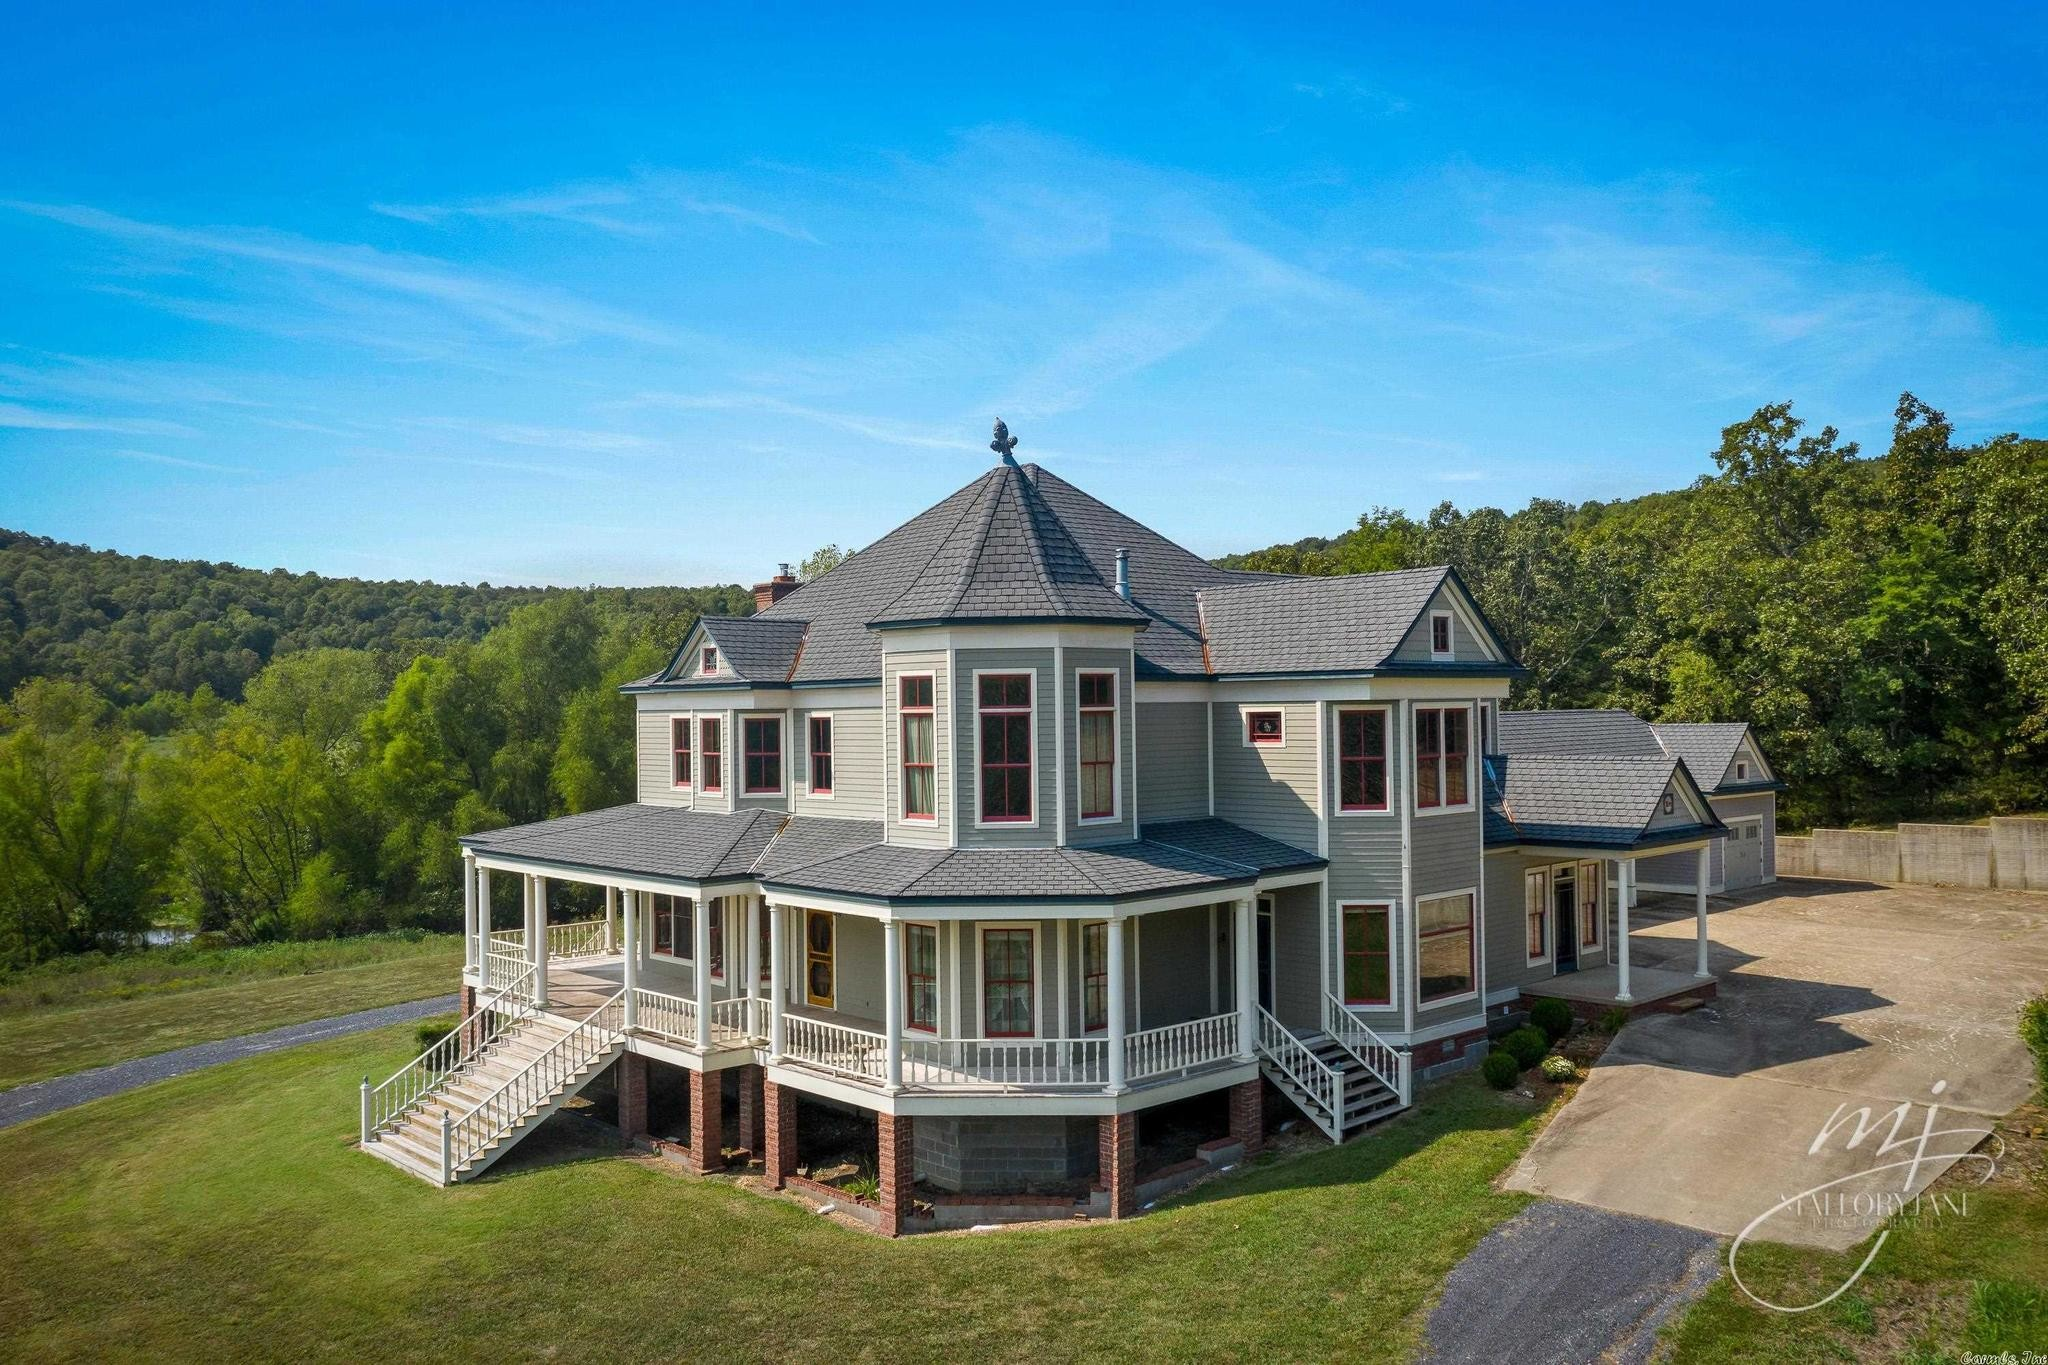 4-Bedroom House In Marshall